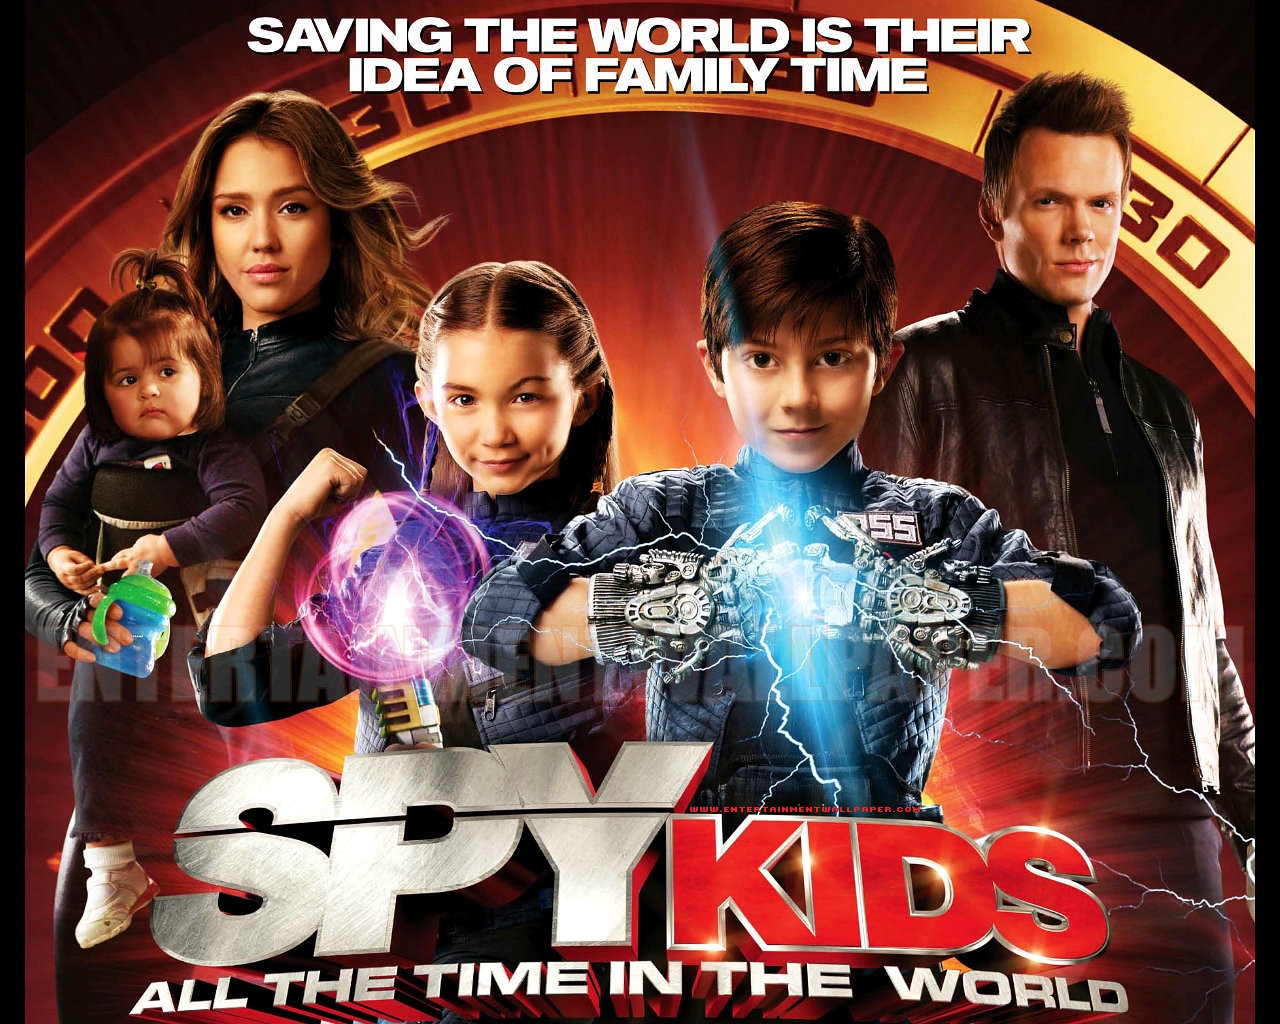 Spy Kids 4 All the Time in the World Wallpaper   10027364 1280x1024 1280x1024